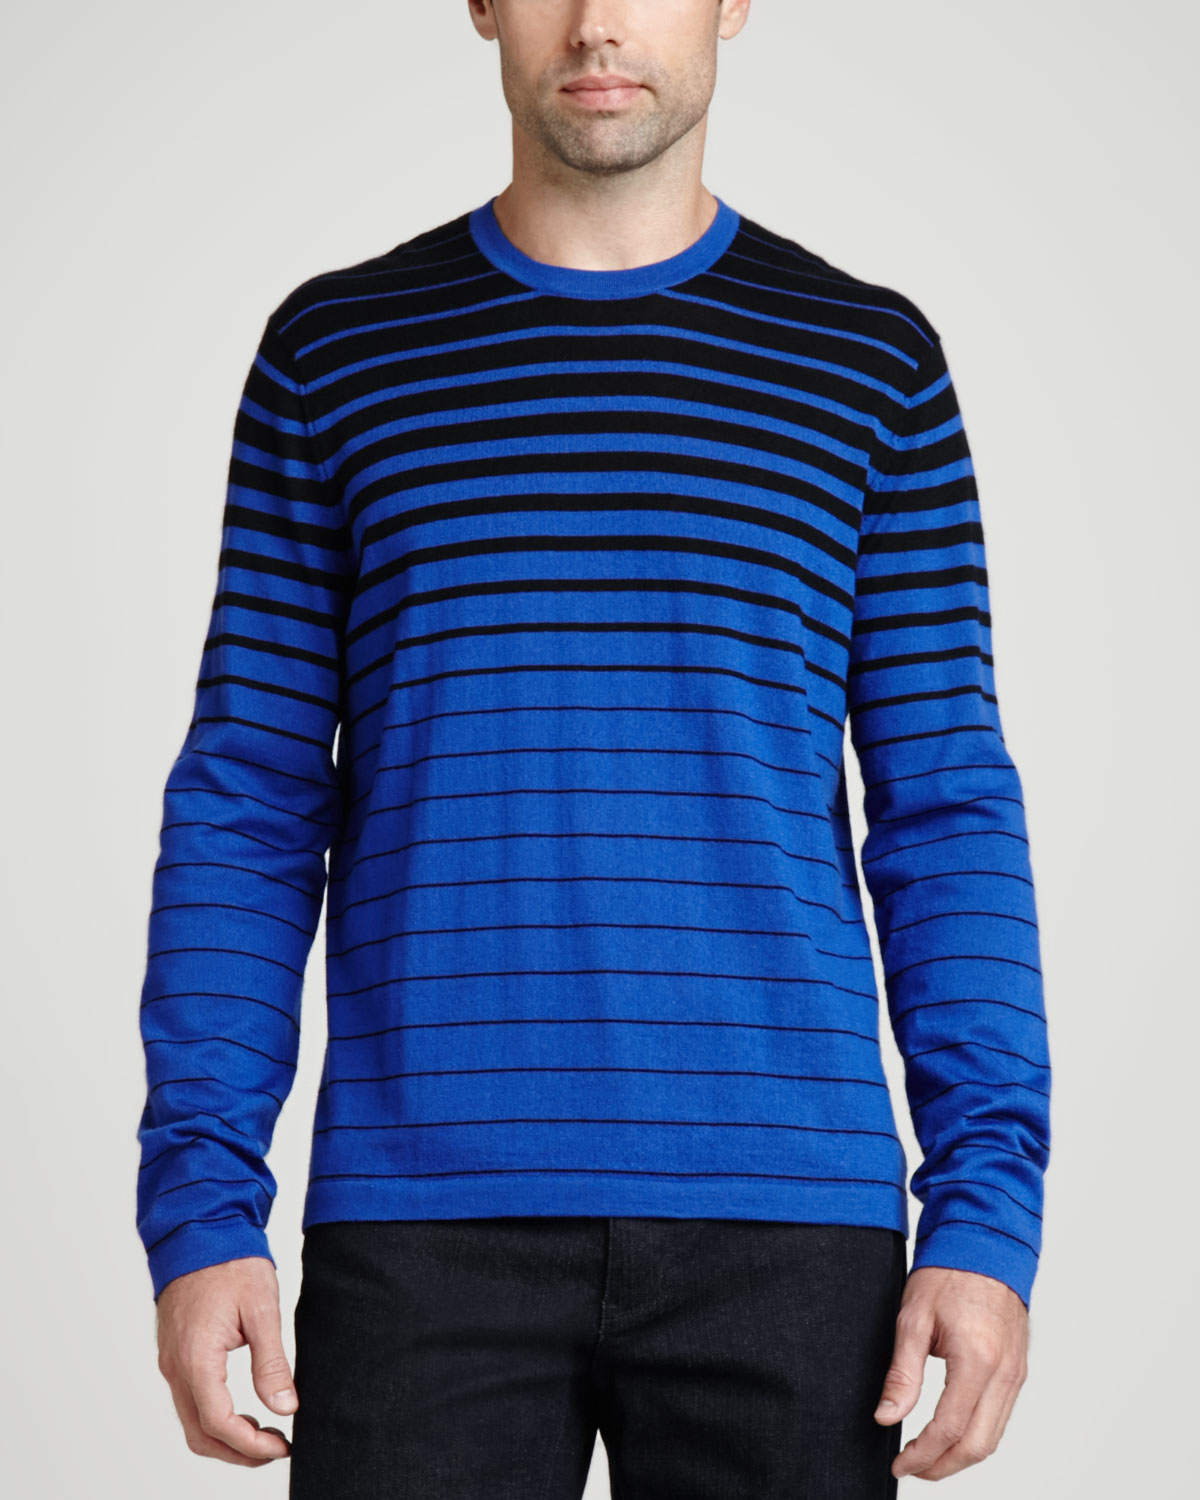 Neiman marcus Superfine Cashmere Striped Sweater in Blue for Men ...